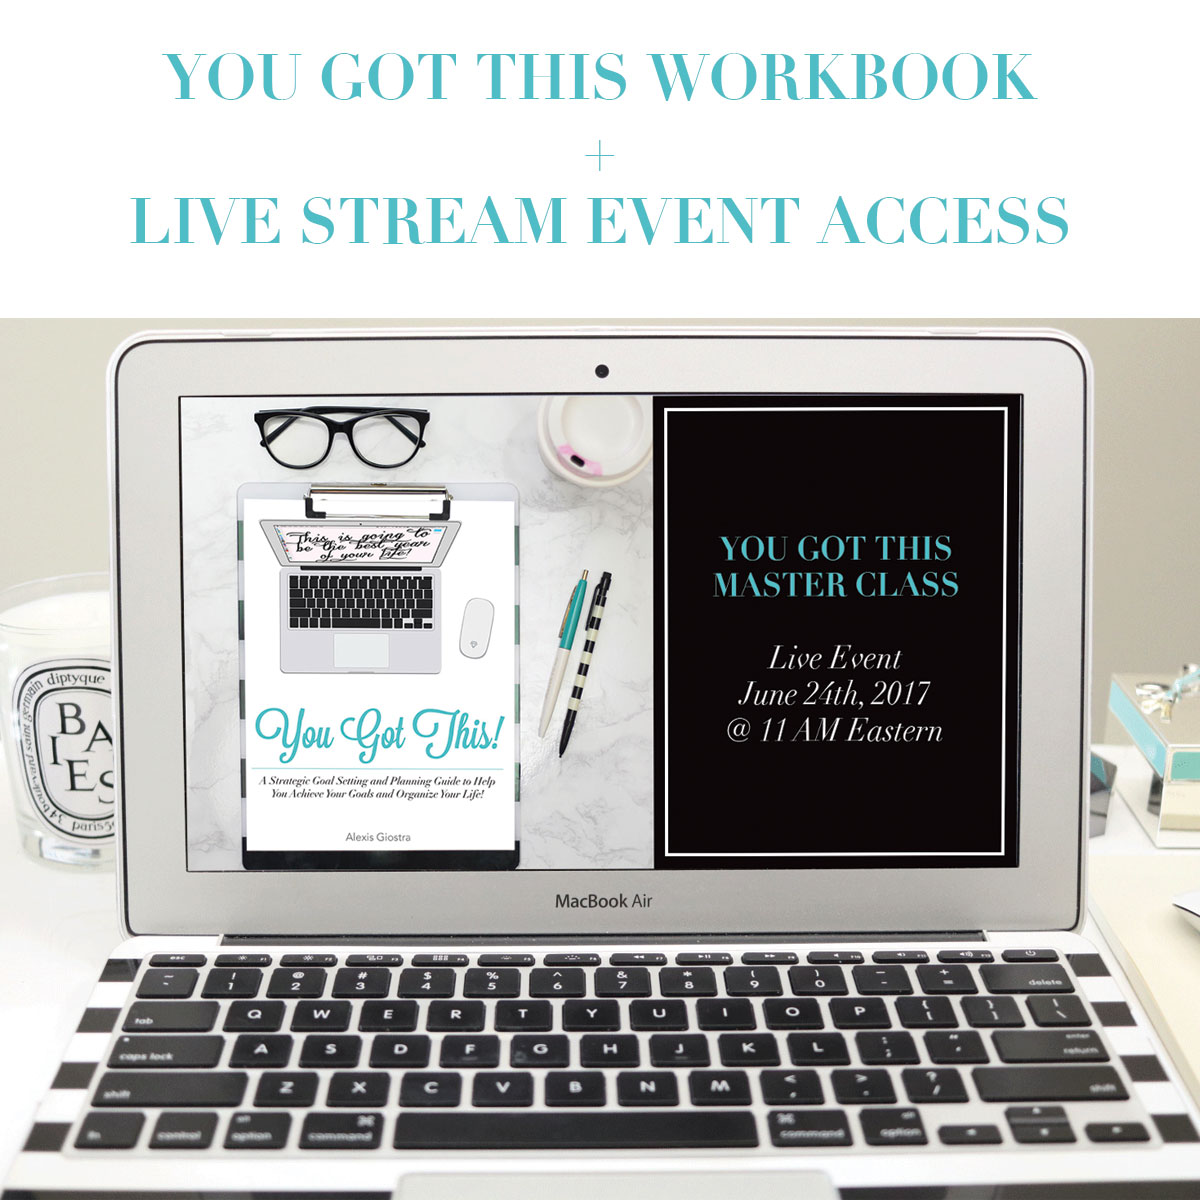 Workbooks workbook live : You Got This Master Class! {Digital Workbook + LIVE Stream Class ...